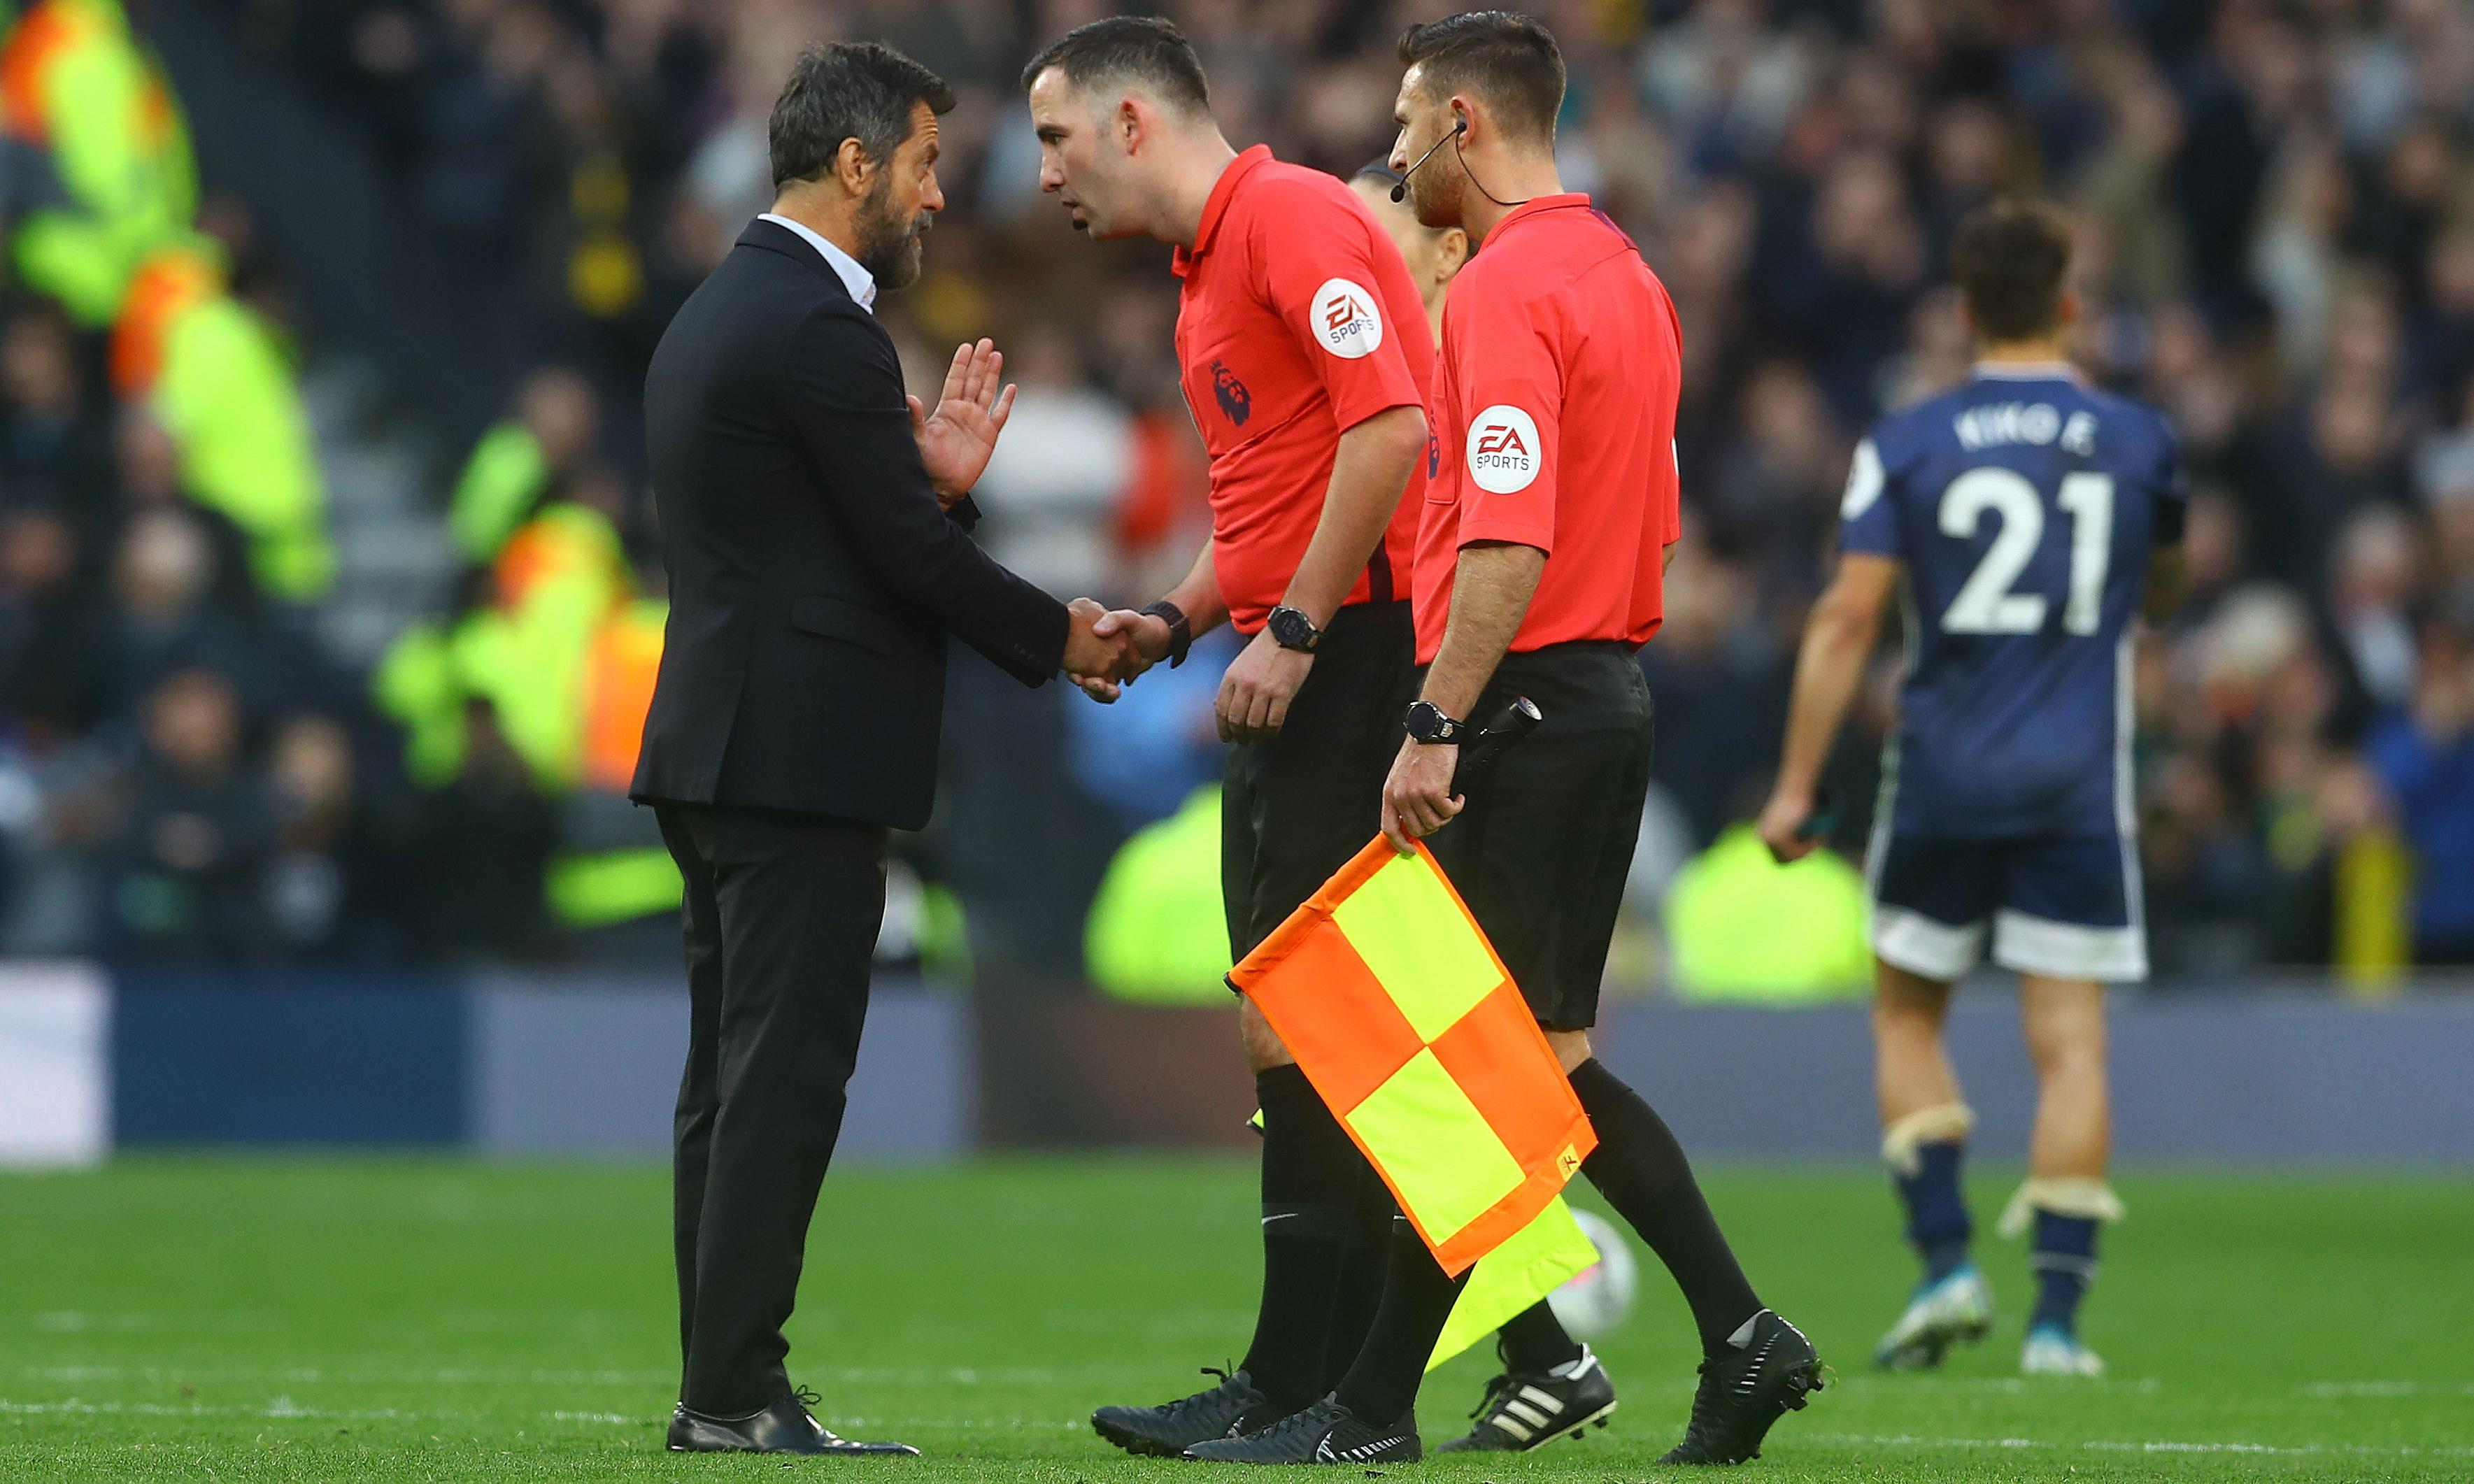 'I thought VAR was supposed to help,' fumes Quique Sánchez Flores